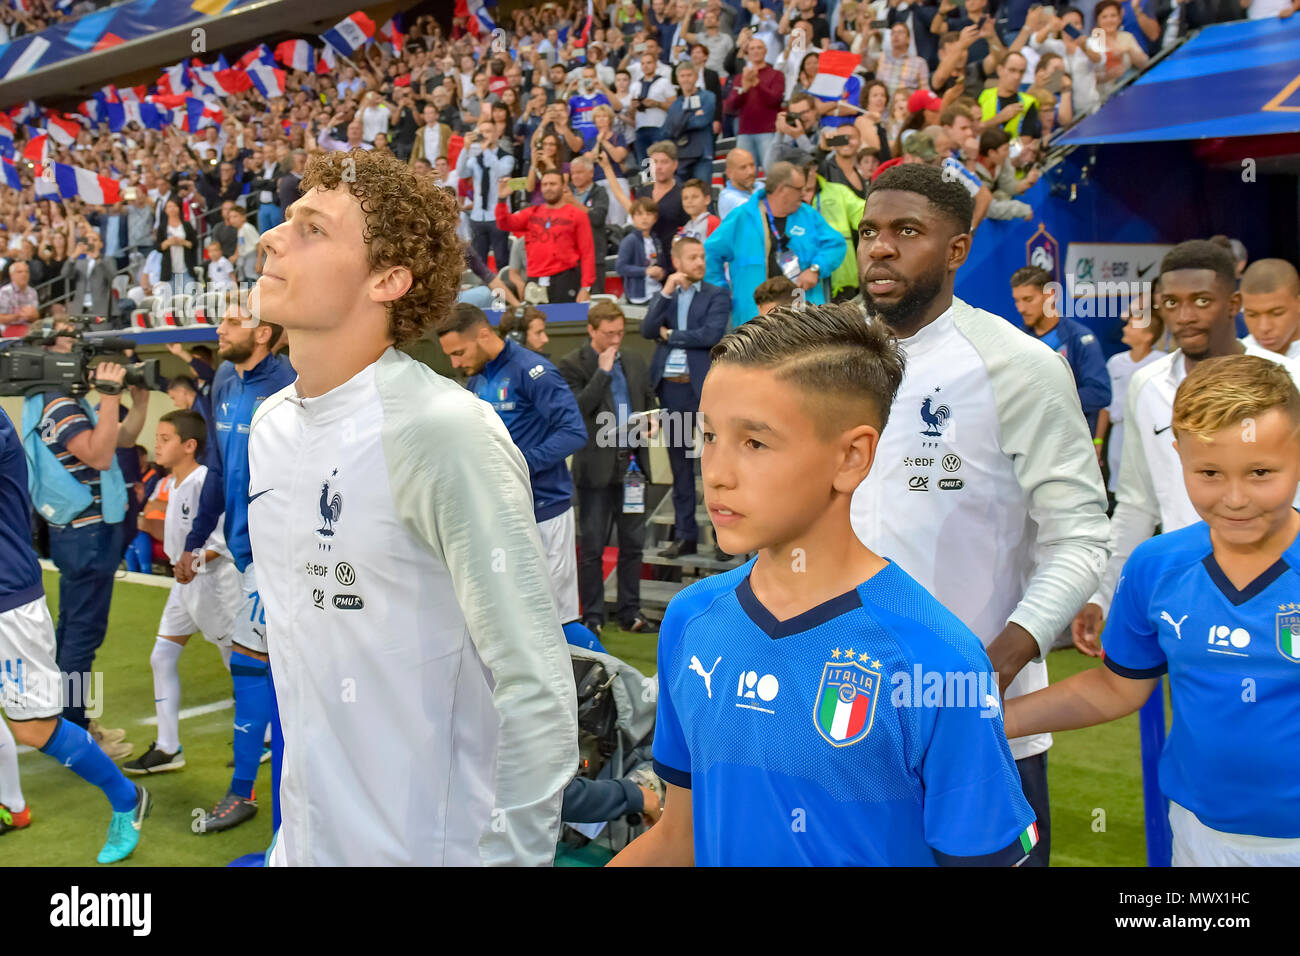 Nice, France. 1st June 2018. Soccer Football - International Friendly - France vs Italy - Allianz Riviera, Nice, France - June 1, 2018 France's Benjamin Pavard and a mascot before the match Credit: BTWImages Sport/Alamy Live News - Stock Image